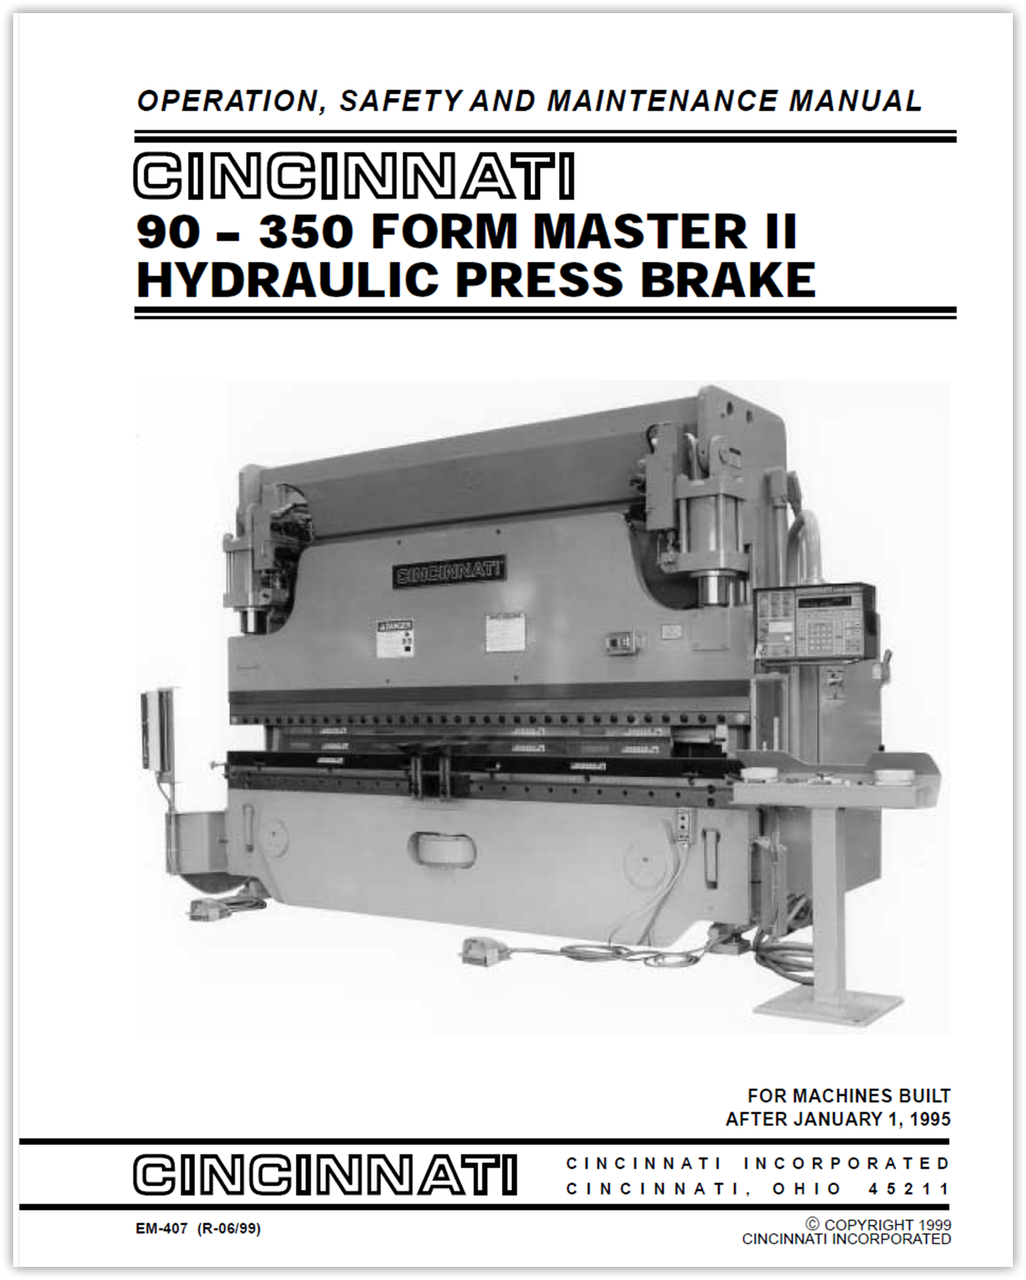 EM-407 (R-06-99) 90-350 Form Master II Hydraulic Press Brake Operation, Safety and Maintenance Manual - For Machines Built After January 1, 1995